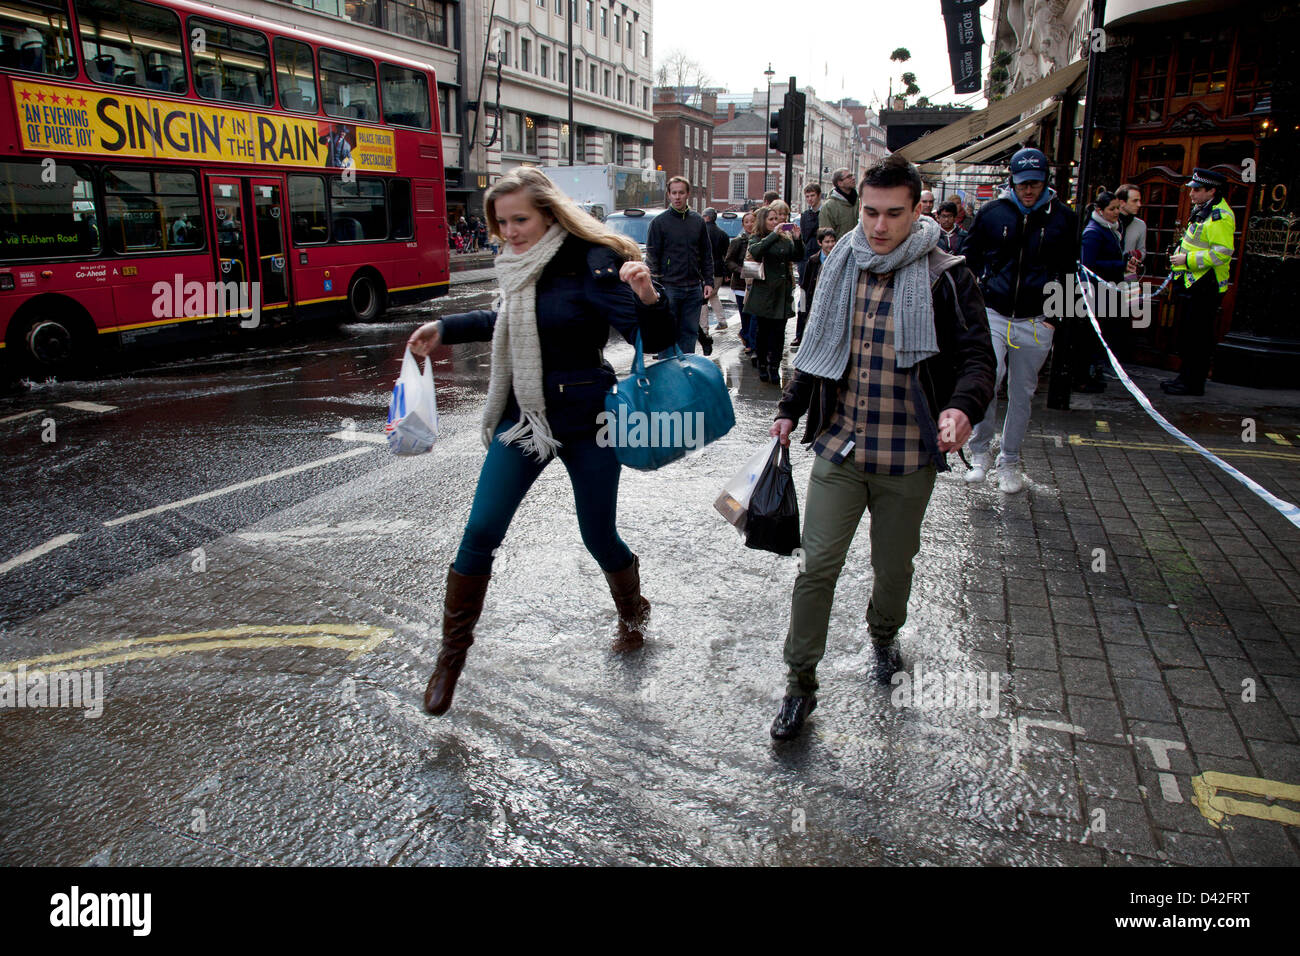 London, UK. Saturday 2nd March 2013. Burst water main causes flooding disruption in central London. People run through - Stock Image